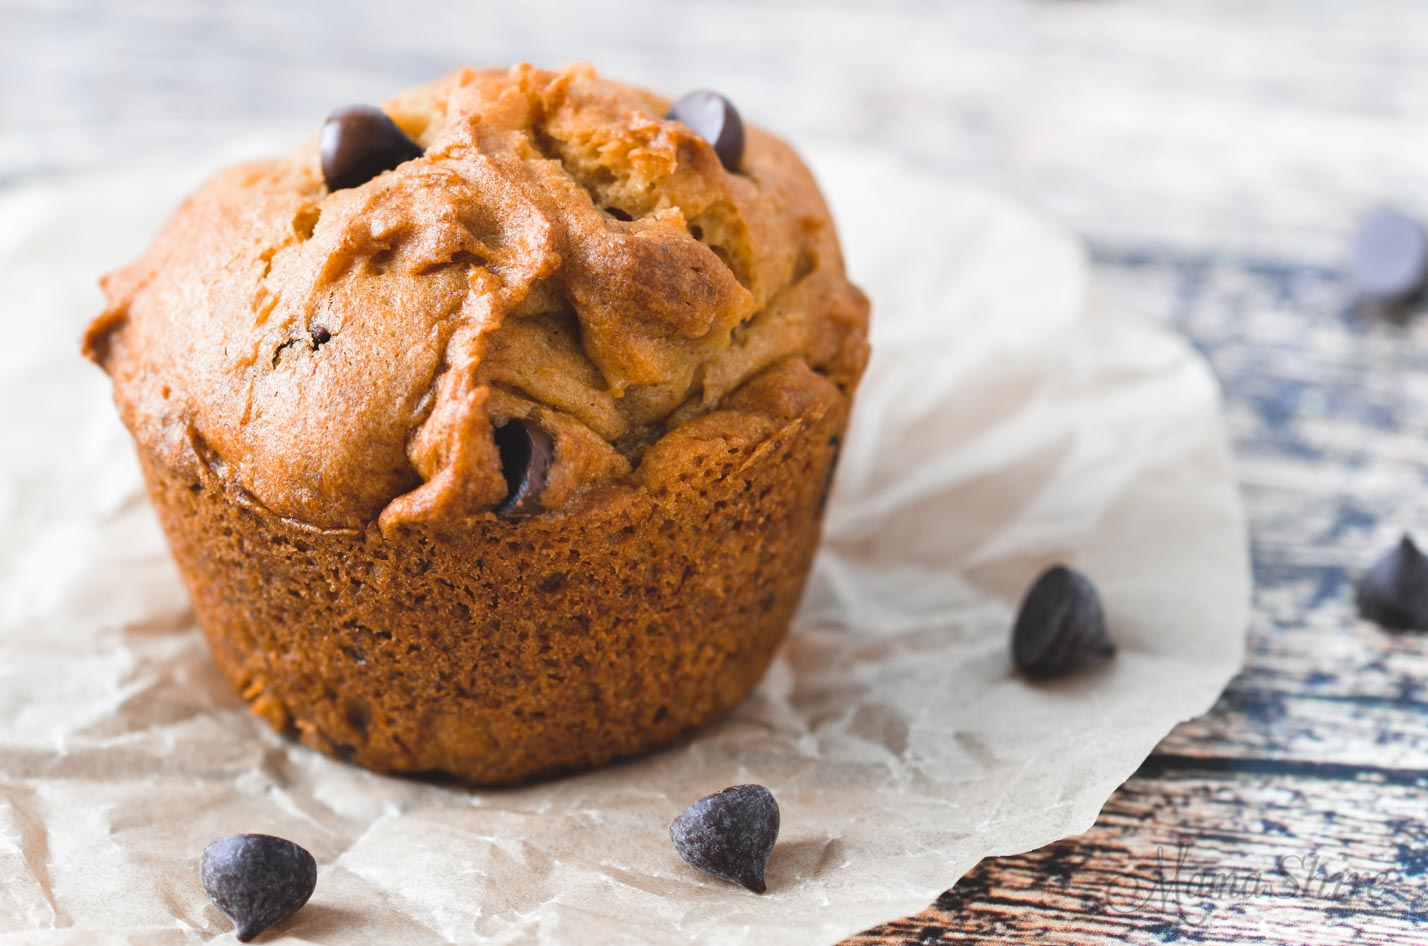 One pumpkin chocolate chip muffin with some chocolate chips scattered around it.